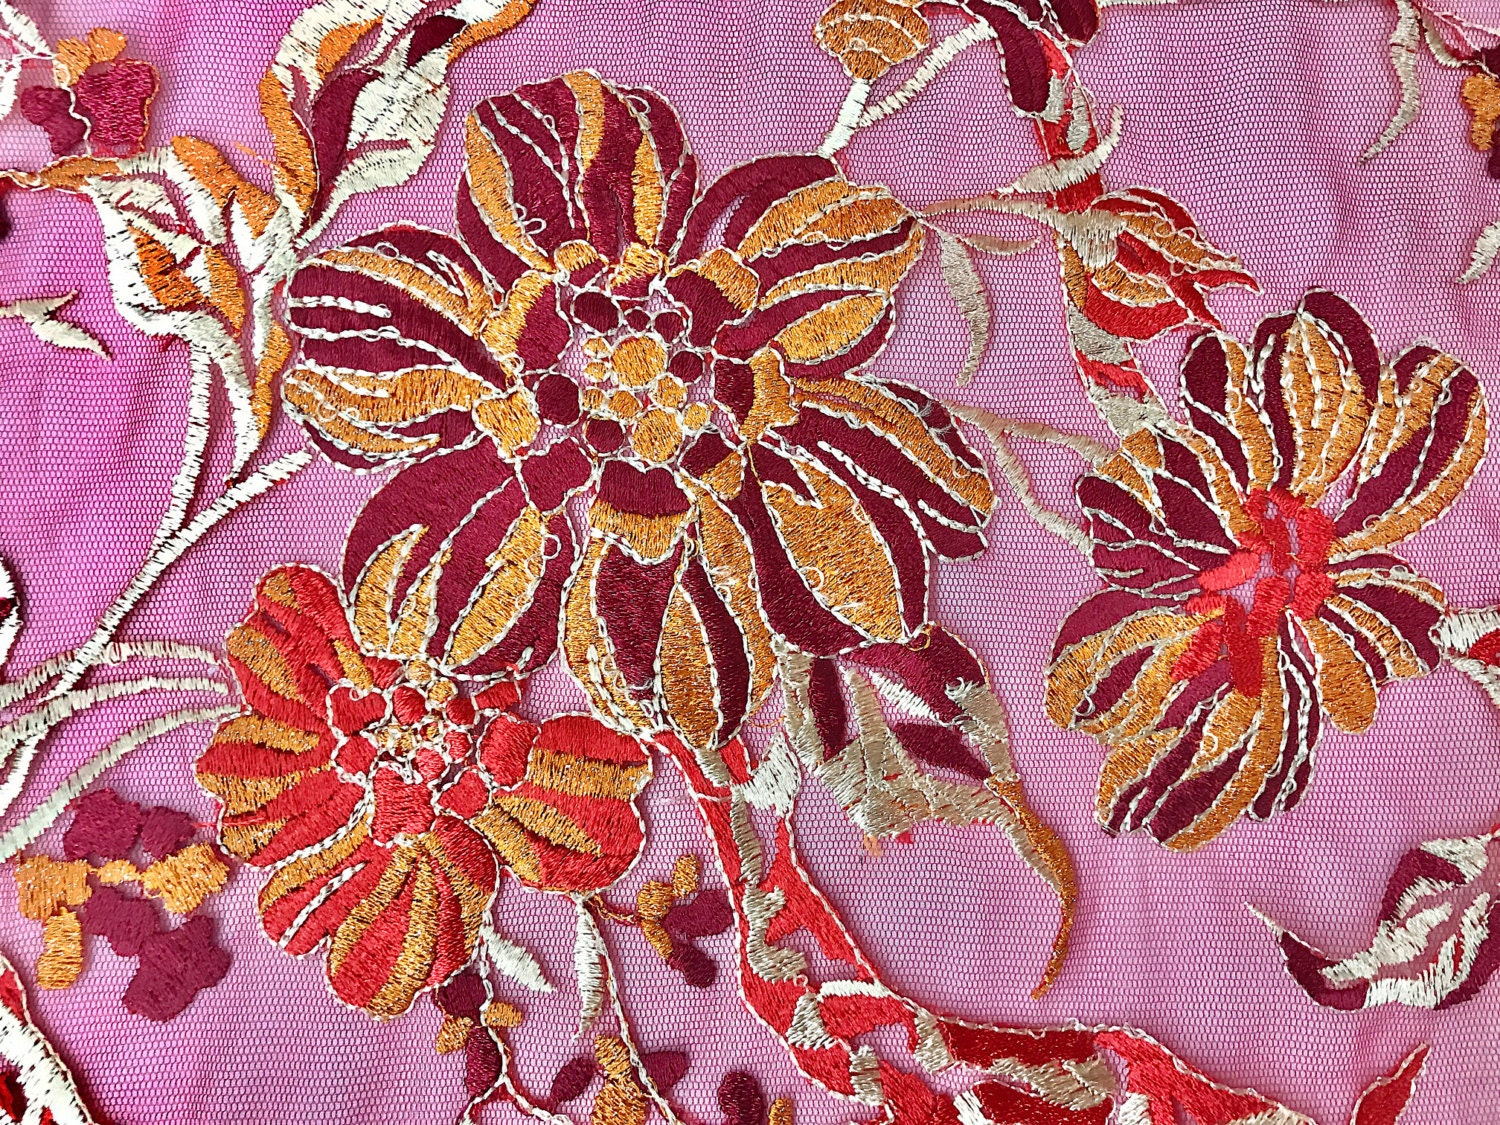 Multi color embroidered floral blossom lace mesh fabric by the